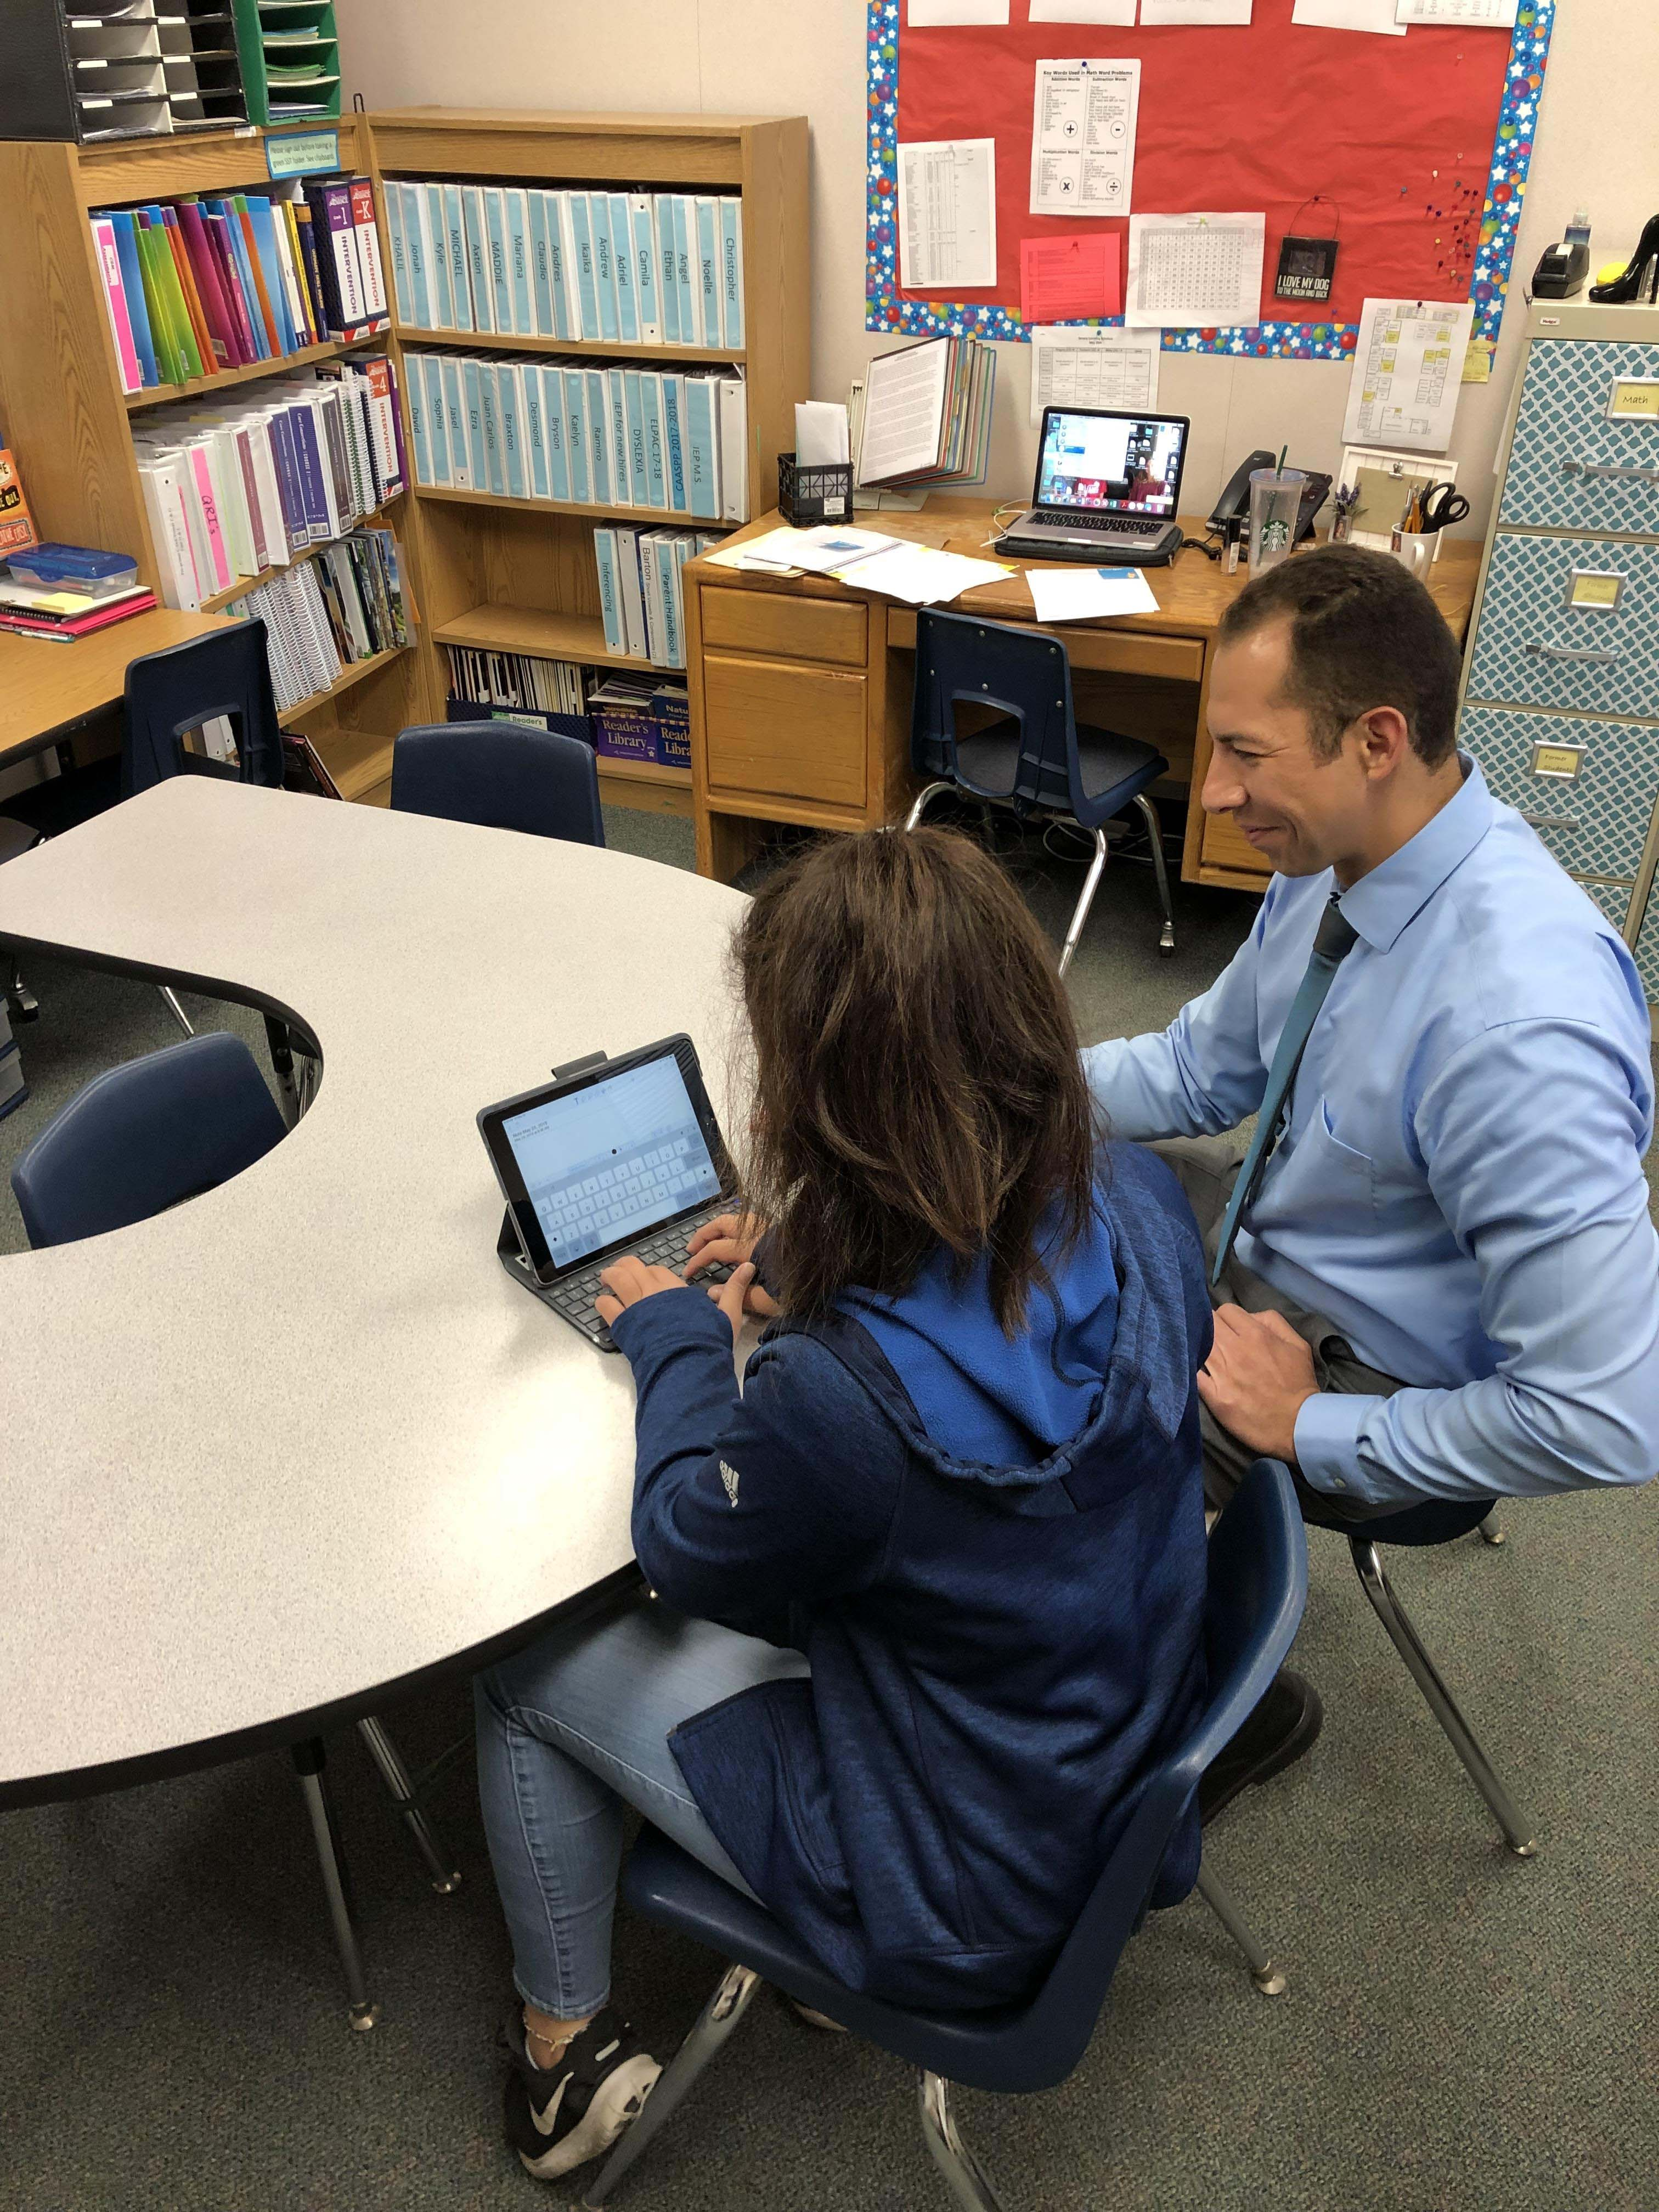 Jerry working with a student in the classroom on a device.